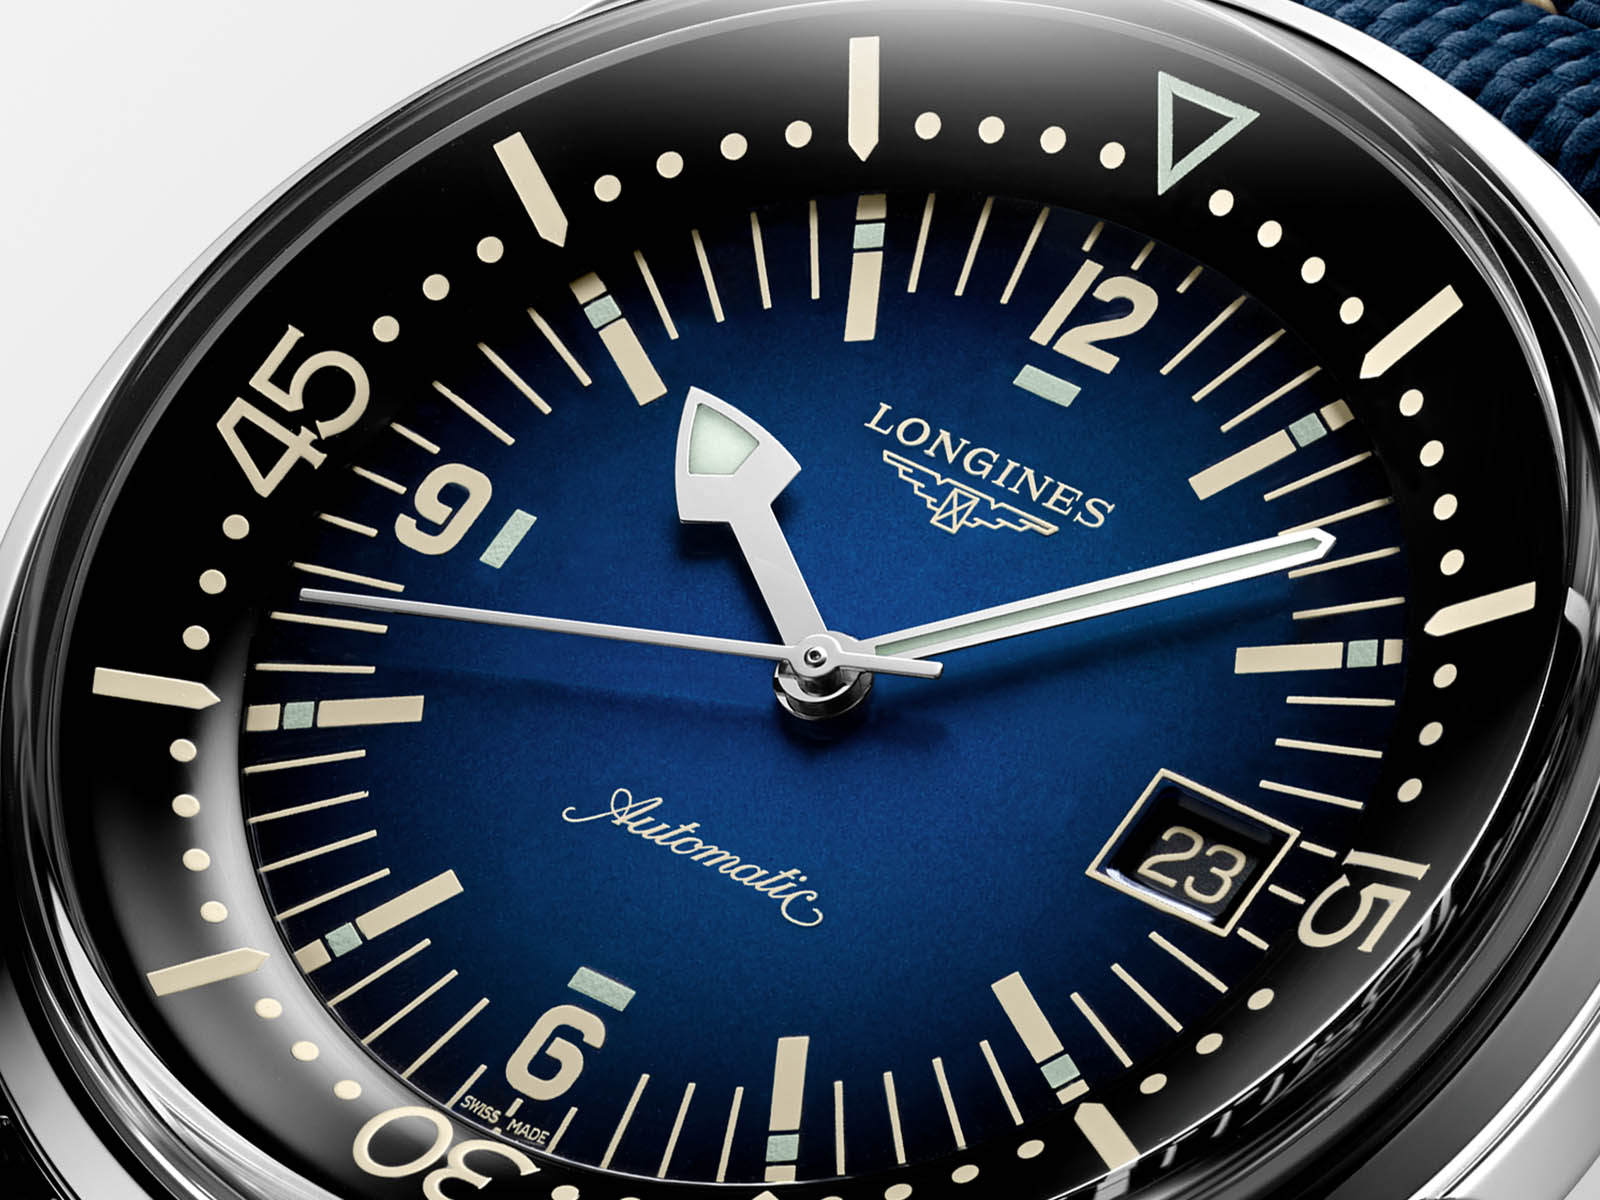 l3-774-4-90-2-longines-legend-diver-new-dial-colors-3.jpg